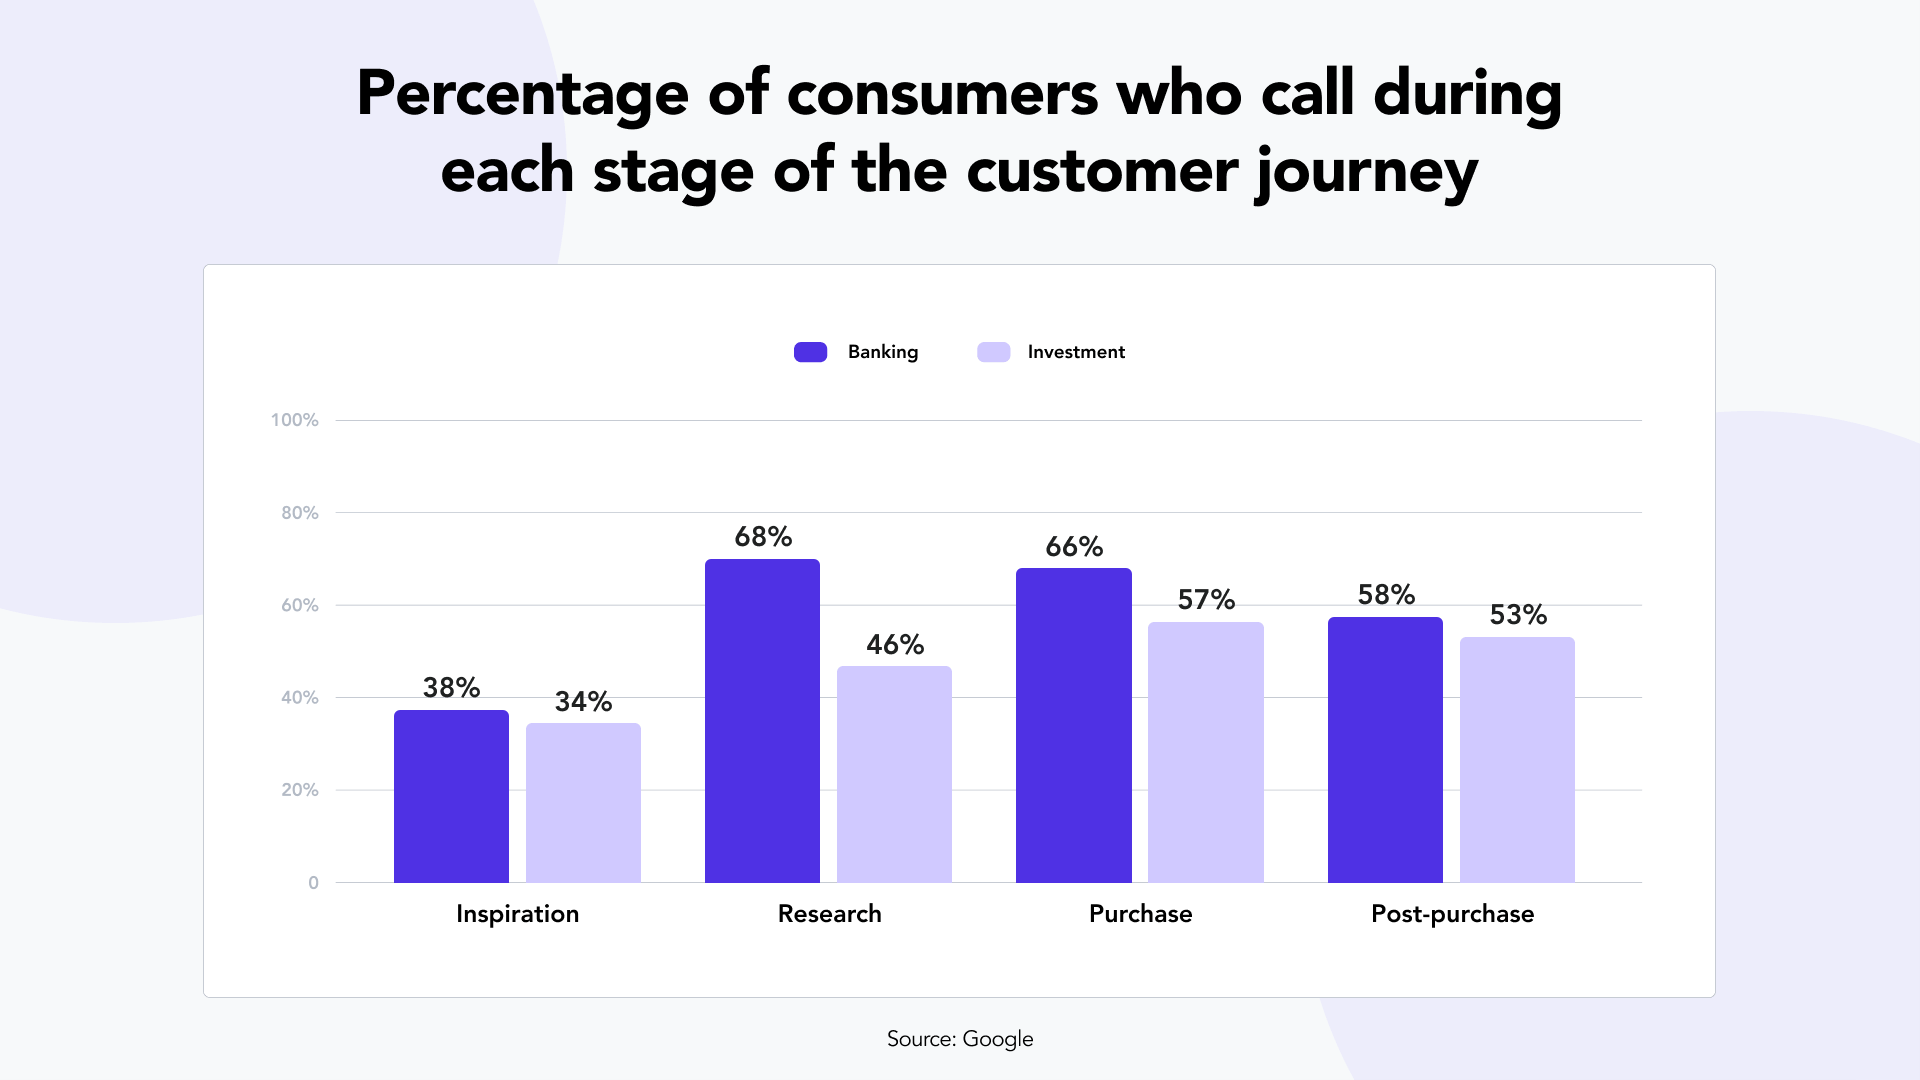 Percent of consumers who call during each stage of the customer journey